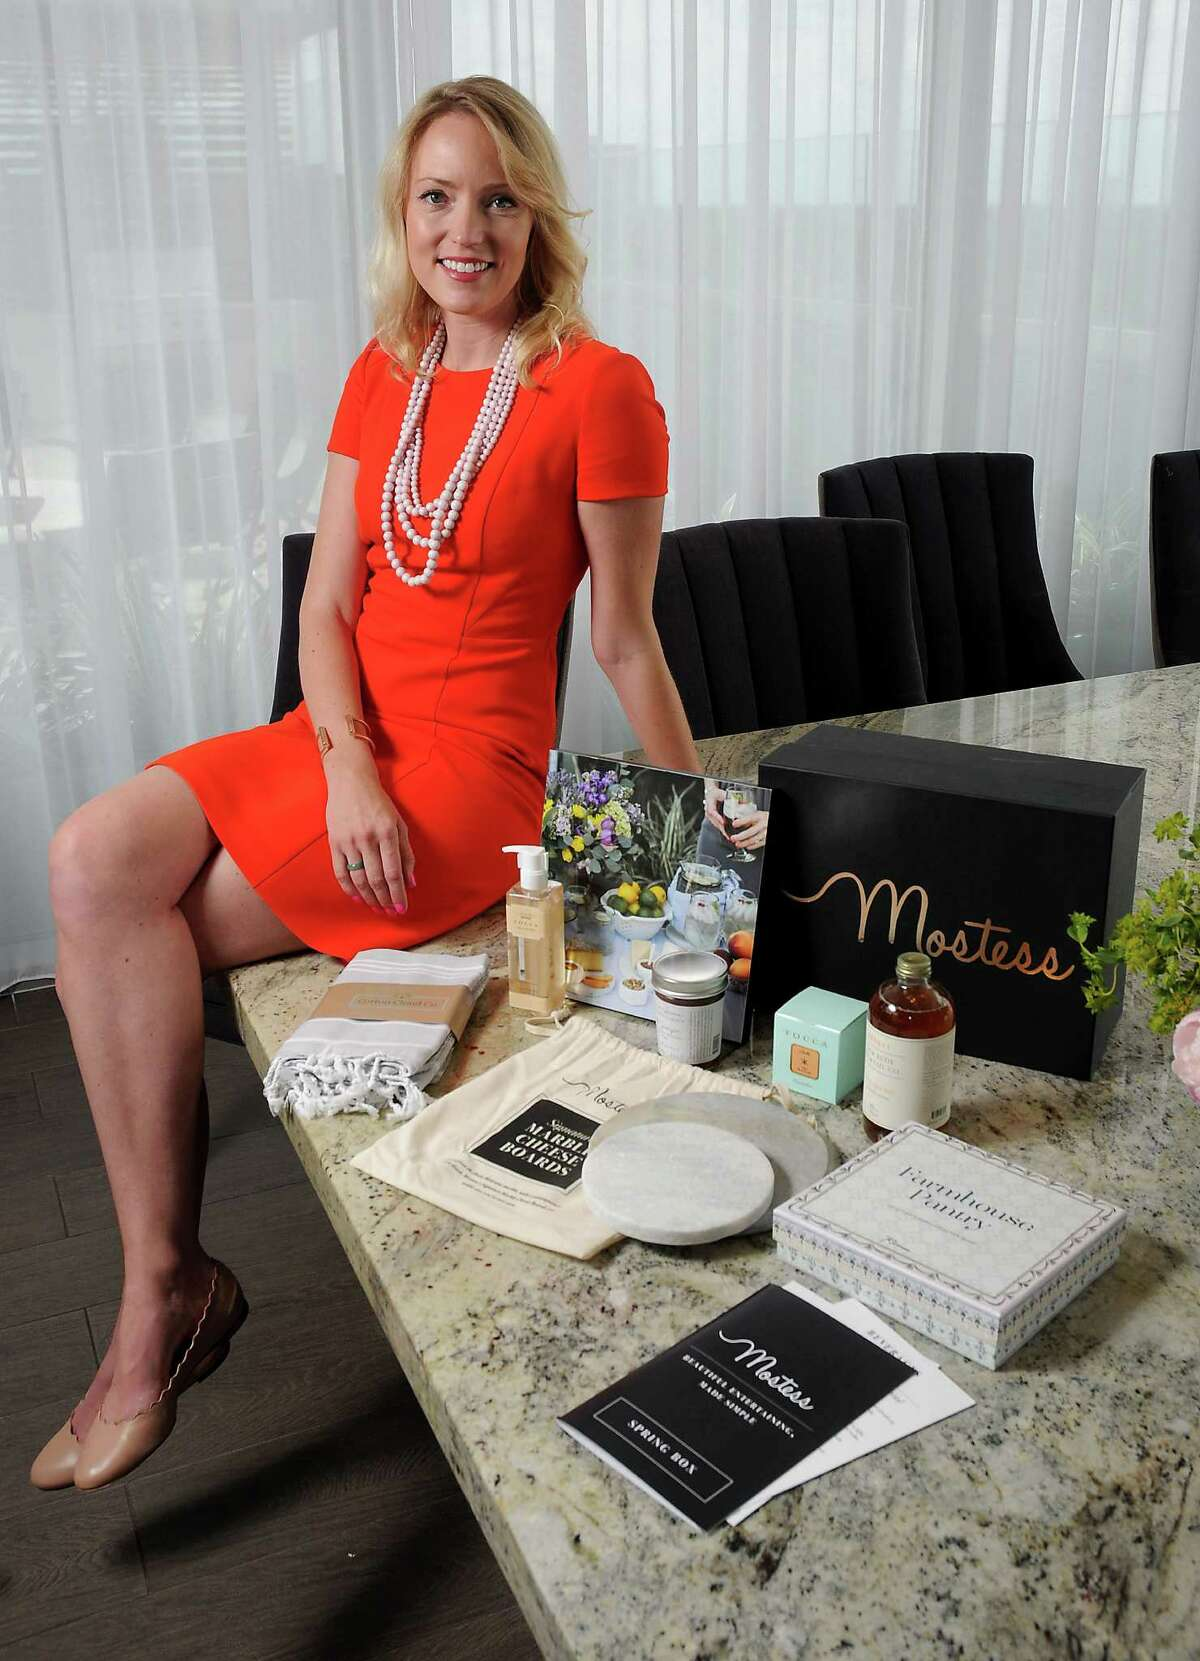 Lindsey Rose King, 32, with her Mostess box, a business she launched earlier this year.